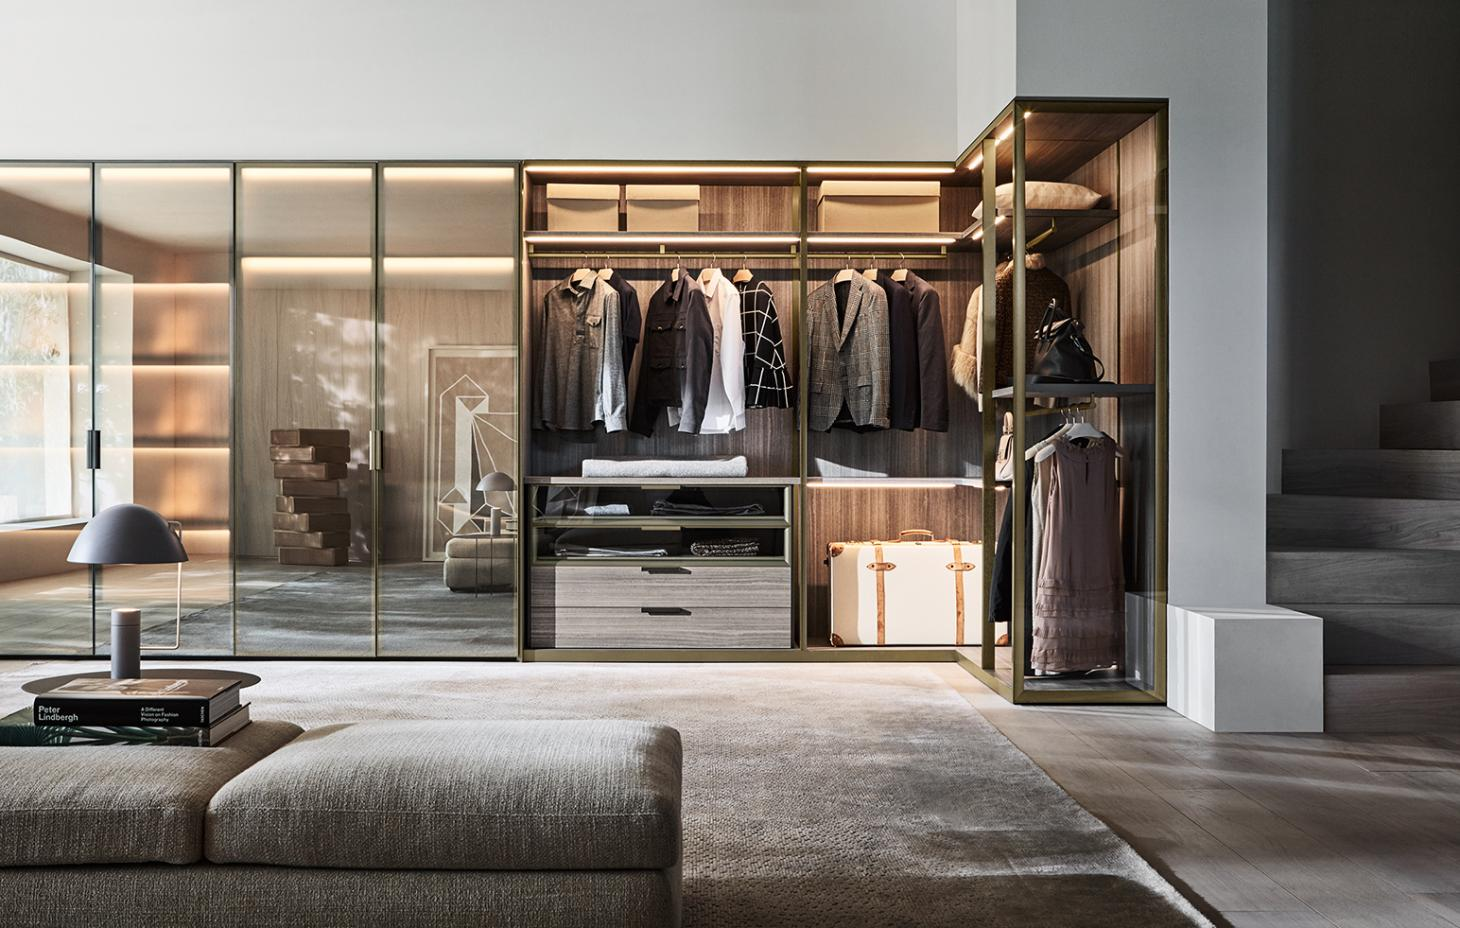 Gliss Master walk-in closet system by Vincent Van Duysen for Molenti & C